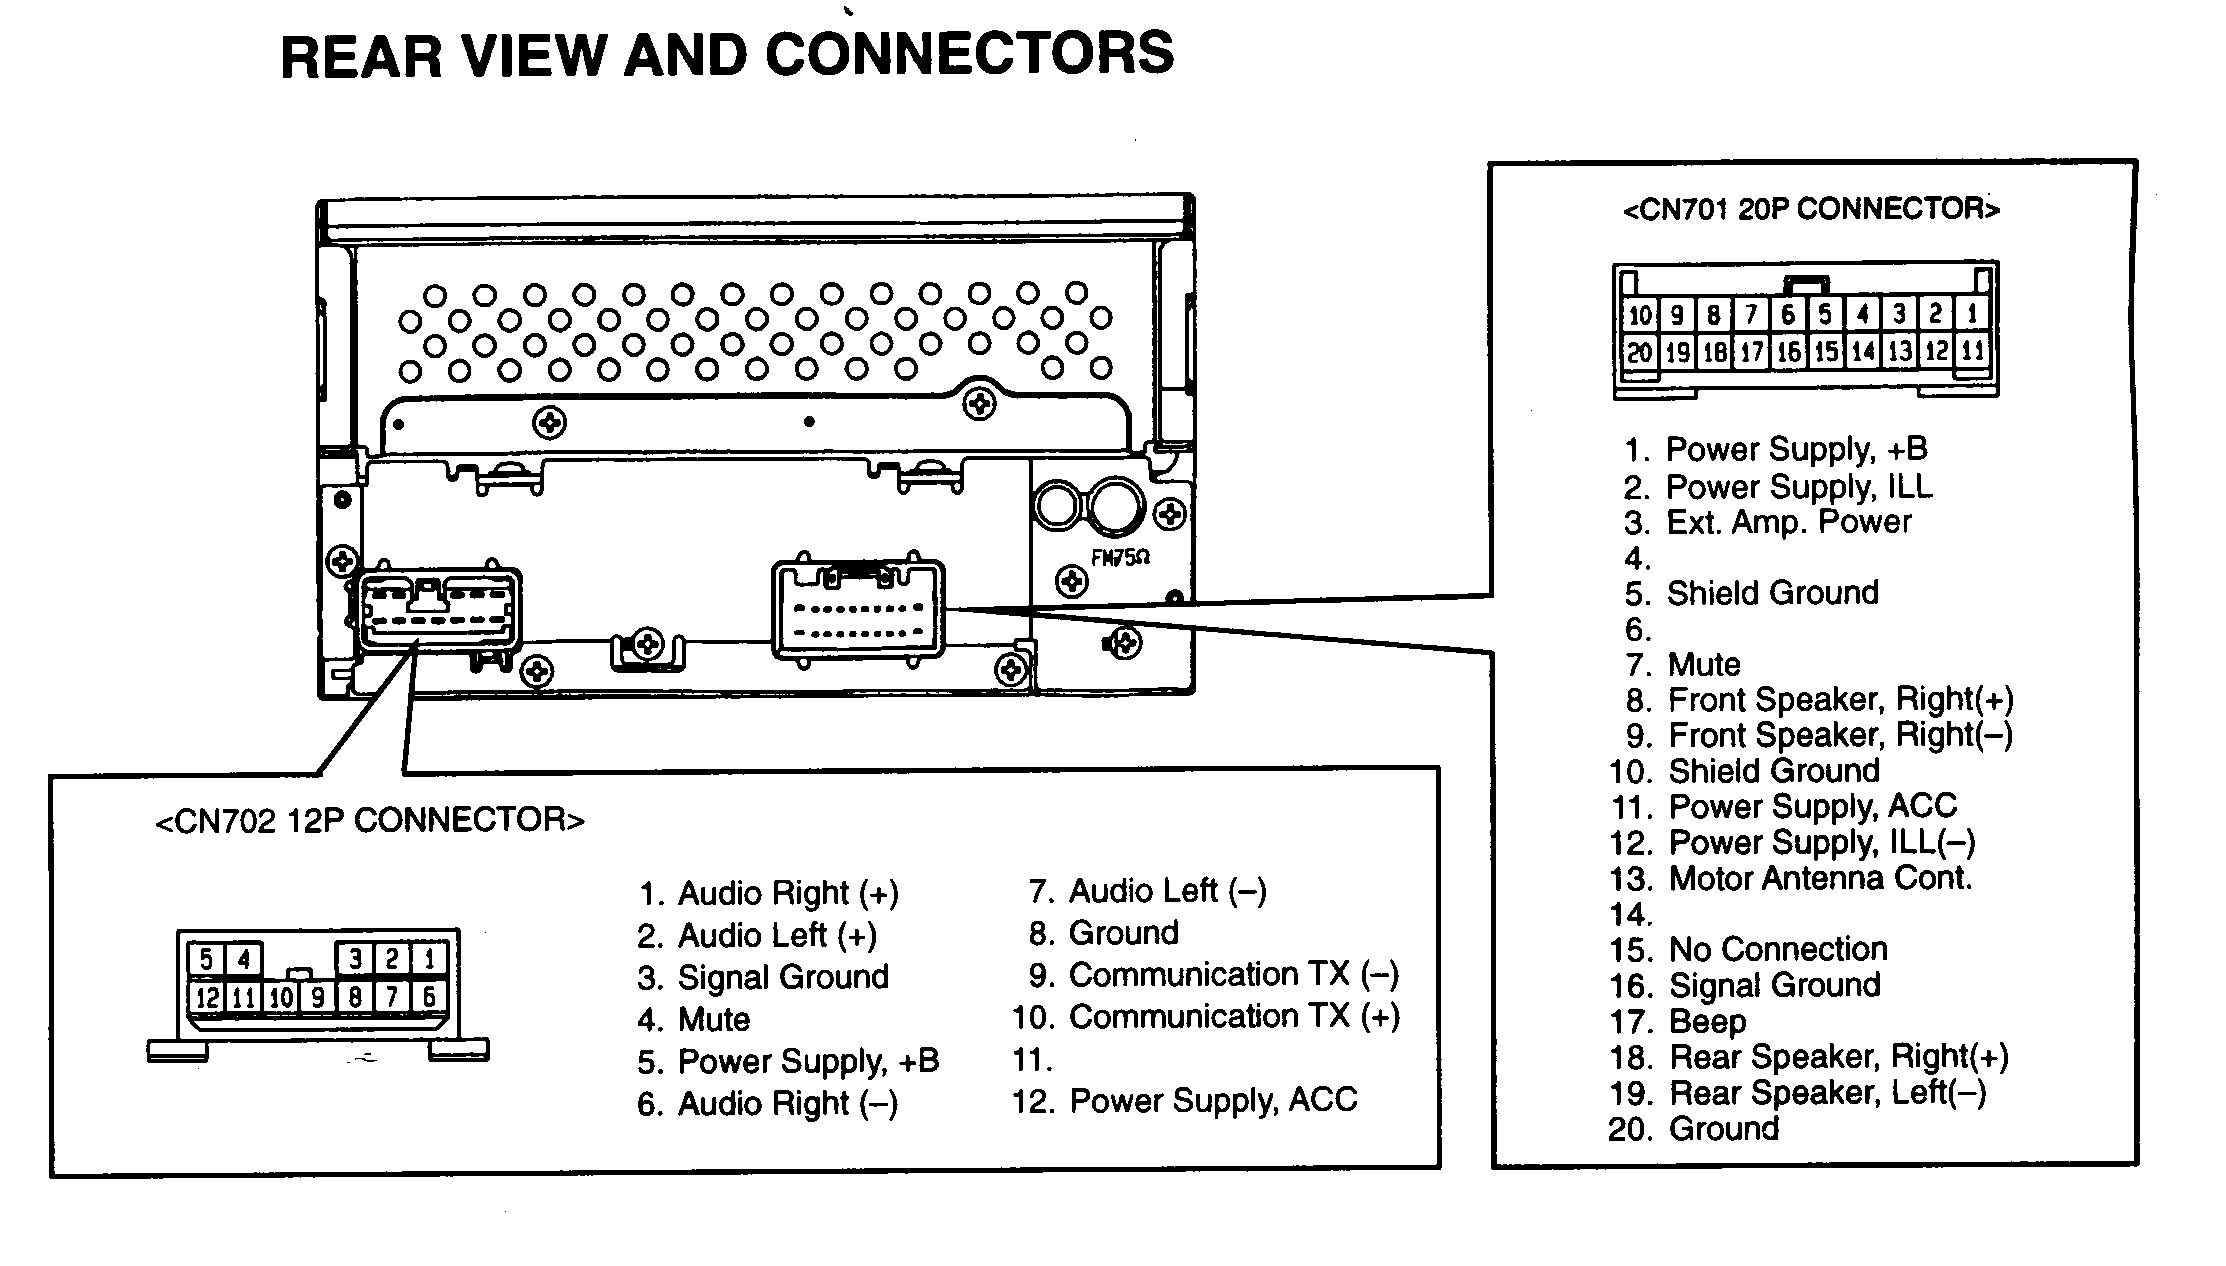 Car Stereo Installation Wiring Diagram with Factory Car Stereo Wiring Diagrams Wiring Diagram Of Car Stereo Installation Wiring Diagram